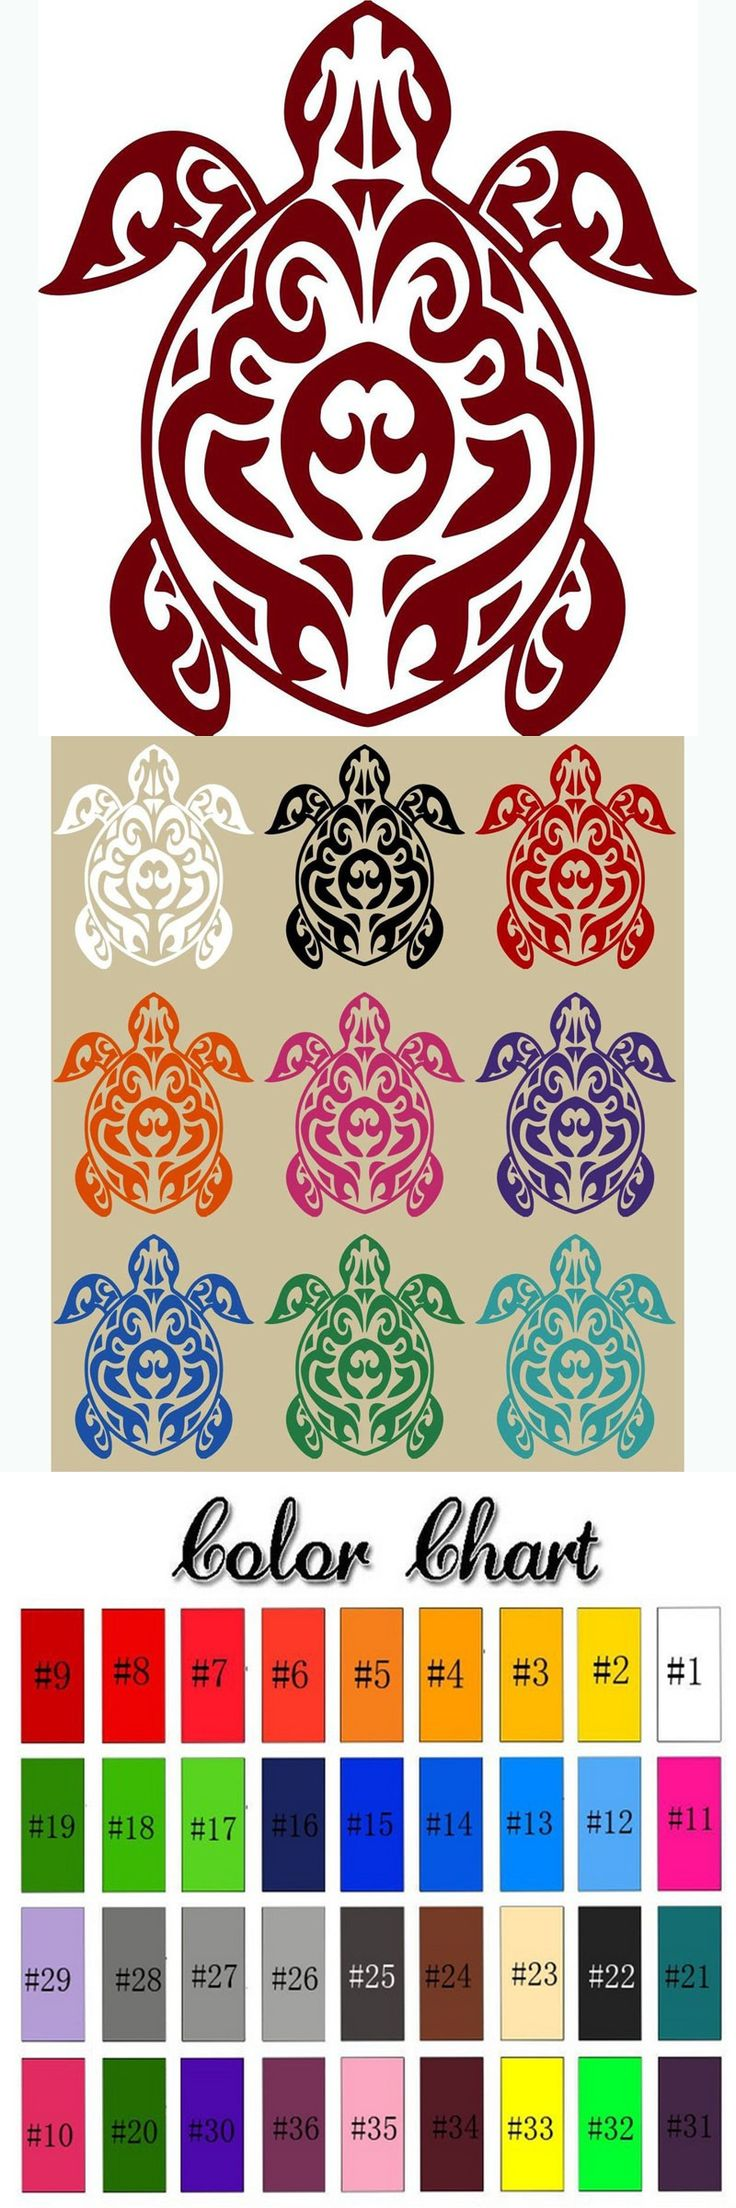 Design my own car sticker - Cute Tortoise Ainmal Car Stickers Sea Turtle Posters Home Decor Carton Tortoise Wall Stickers For Kids Room Vinyl Car Decals